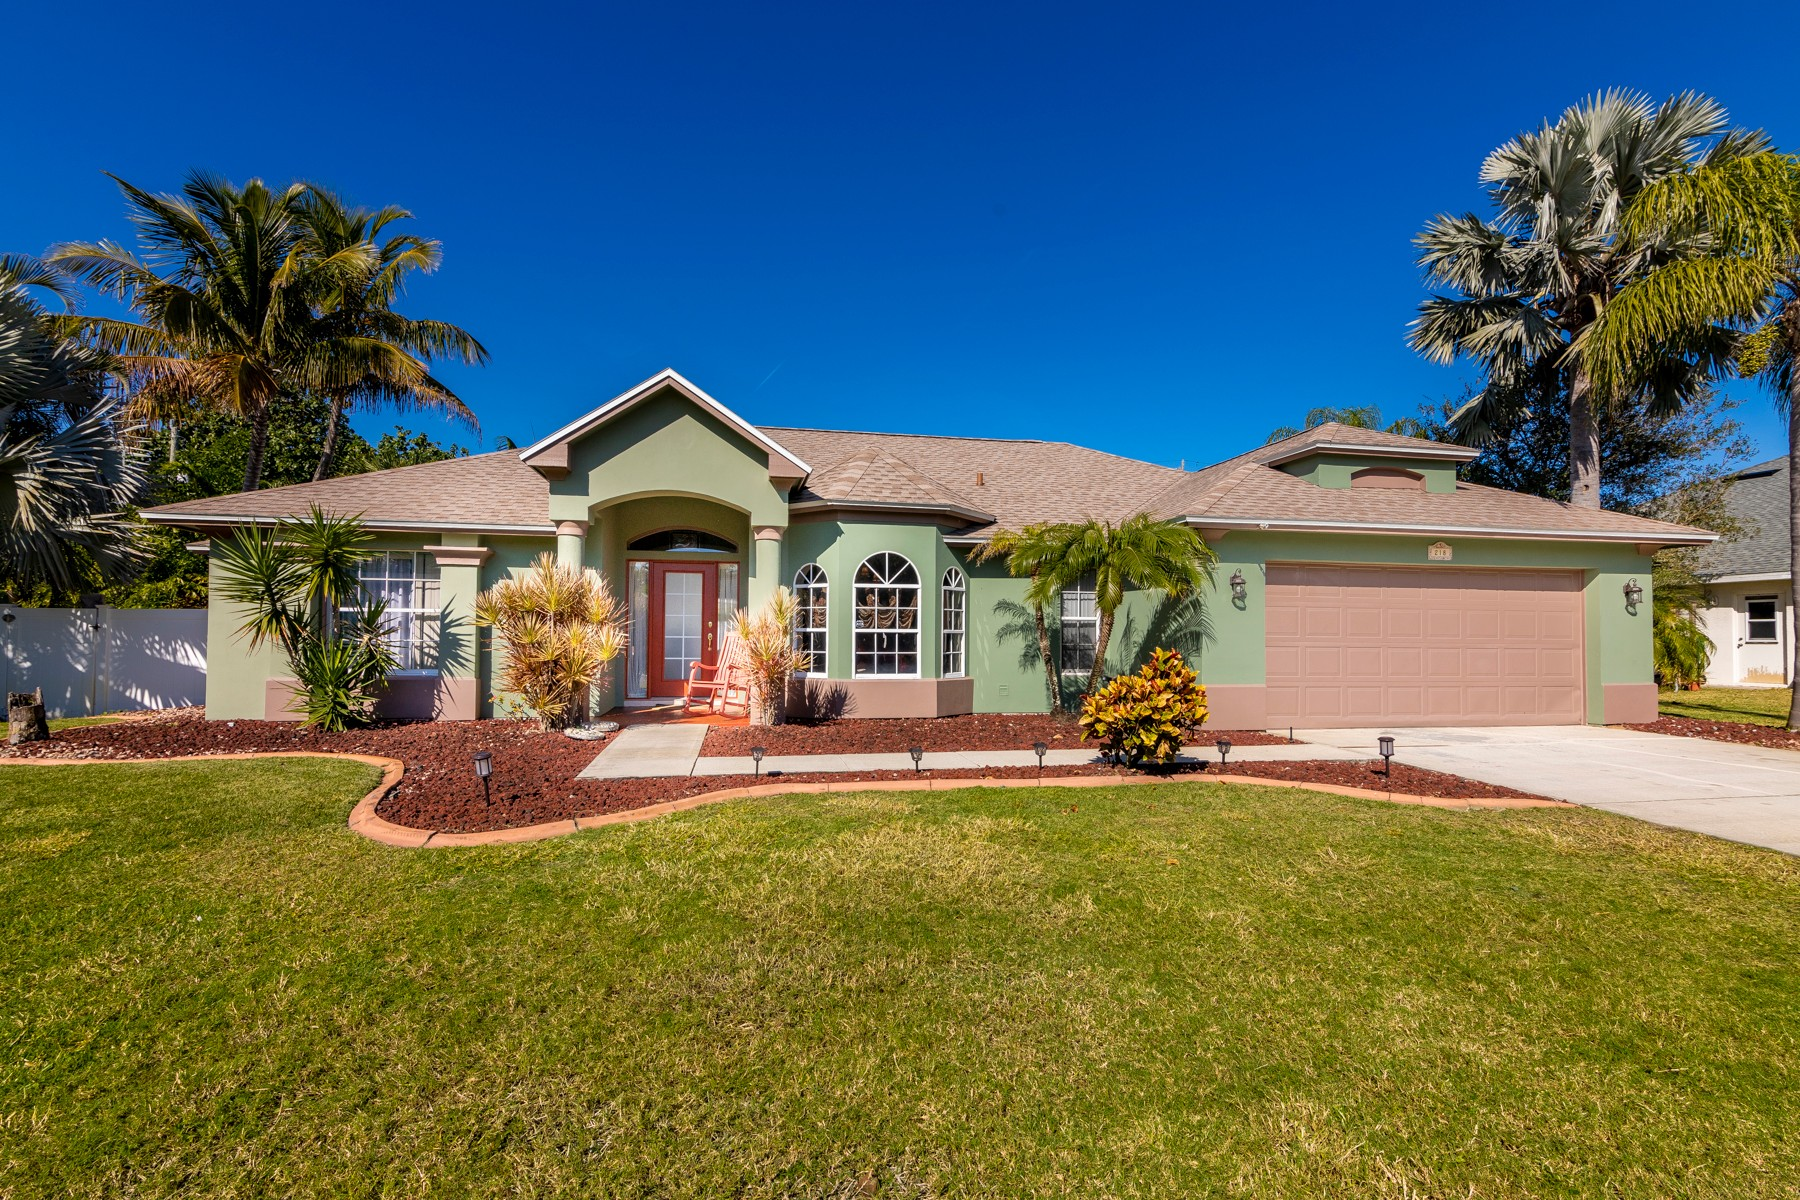 Single Family Homes for Sale at Stunning Pool Home with Great Entertaining Space in Ideal Location 218 Second Avenue Indialantic, Florida 32903 United States